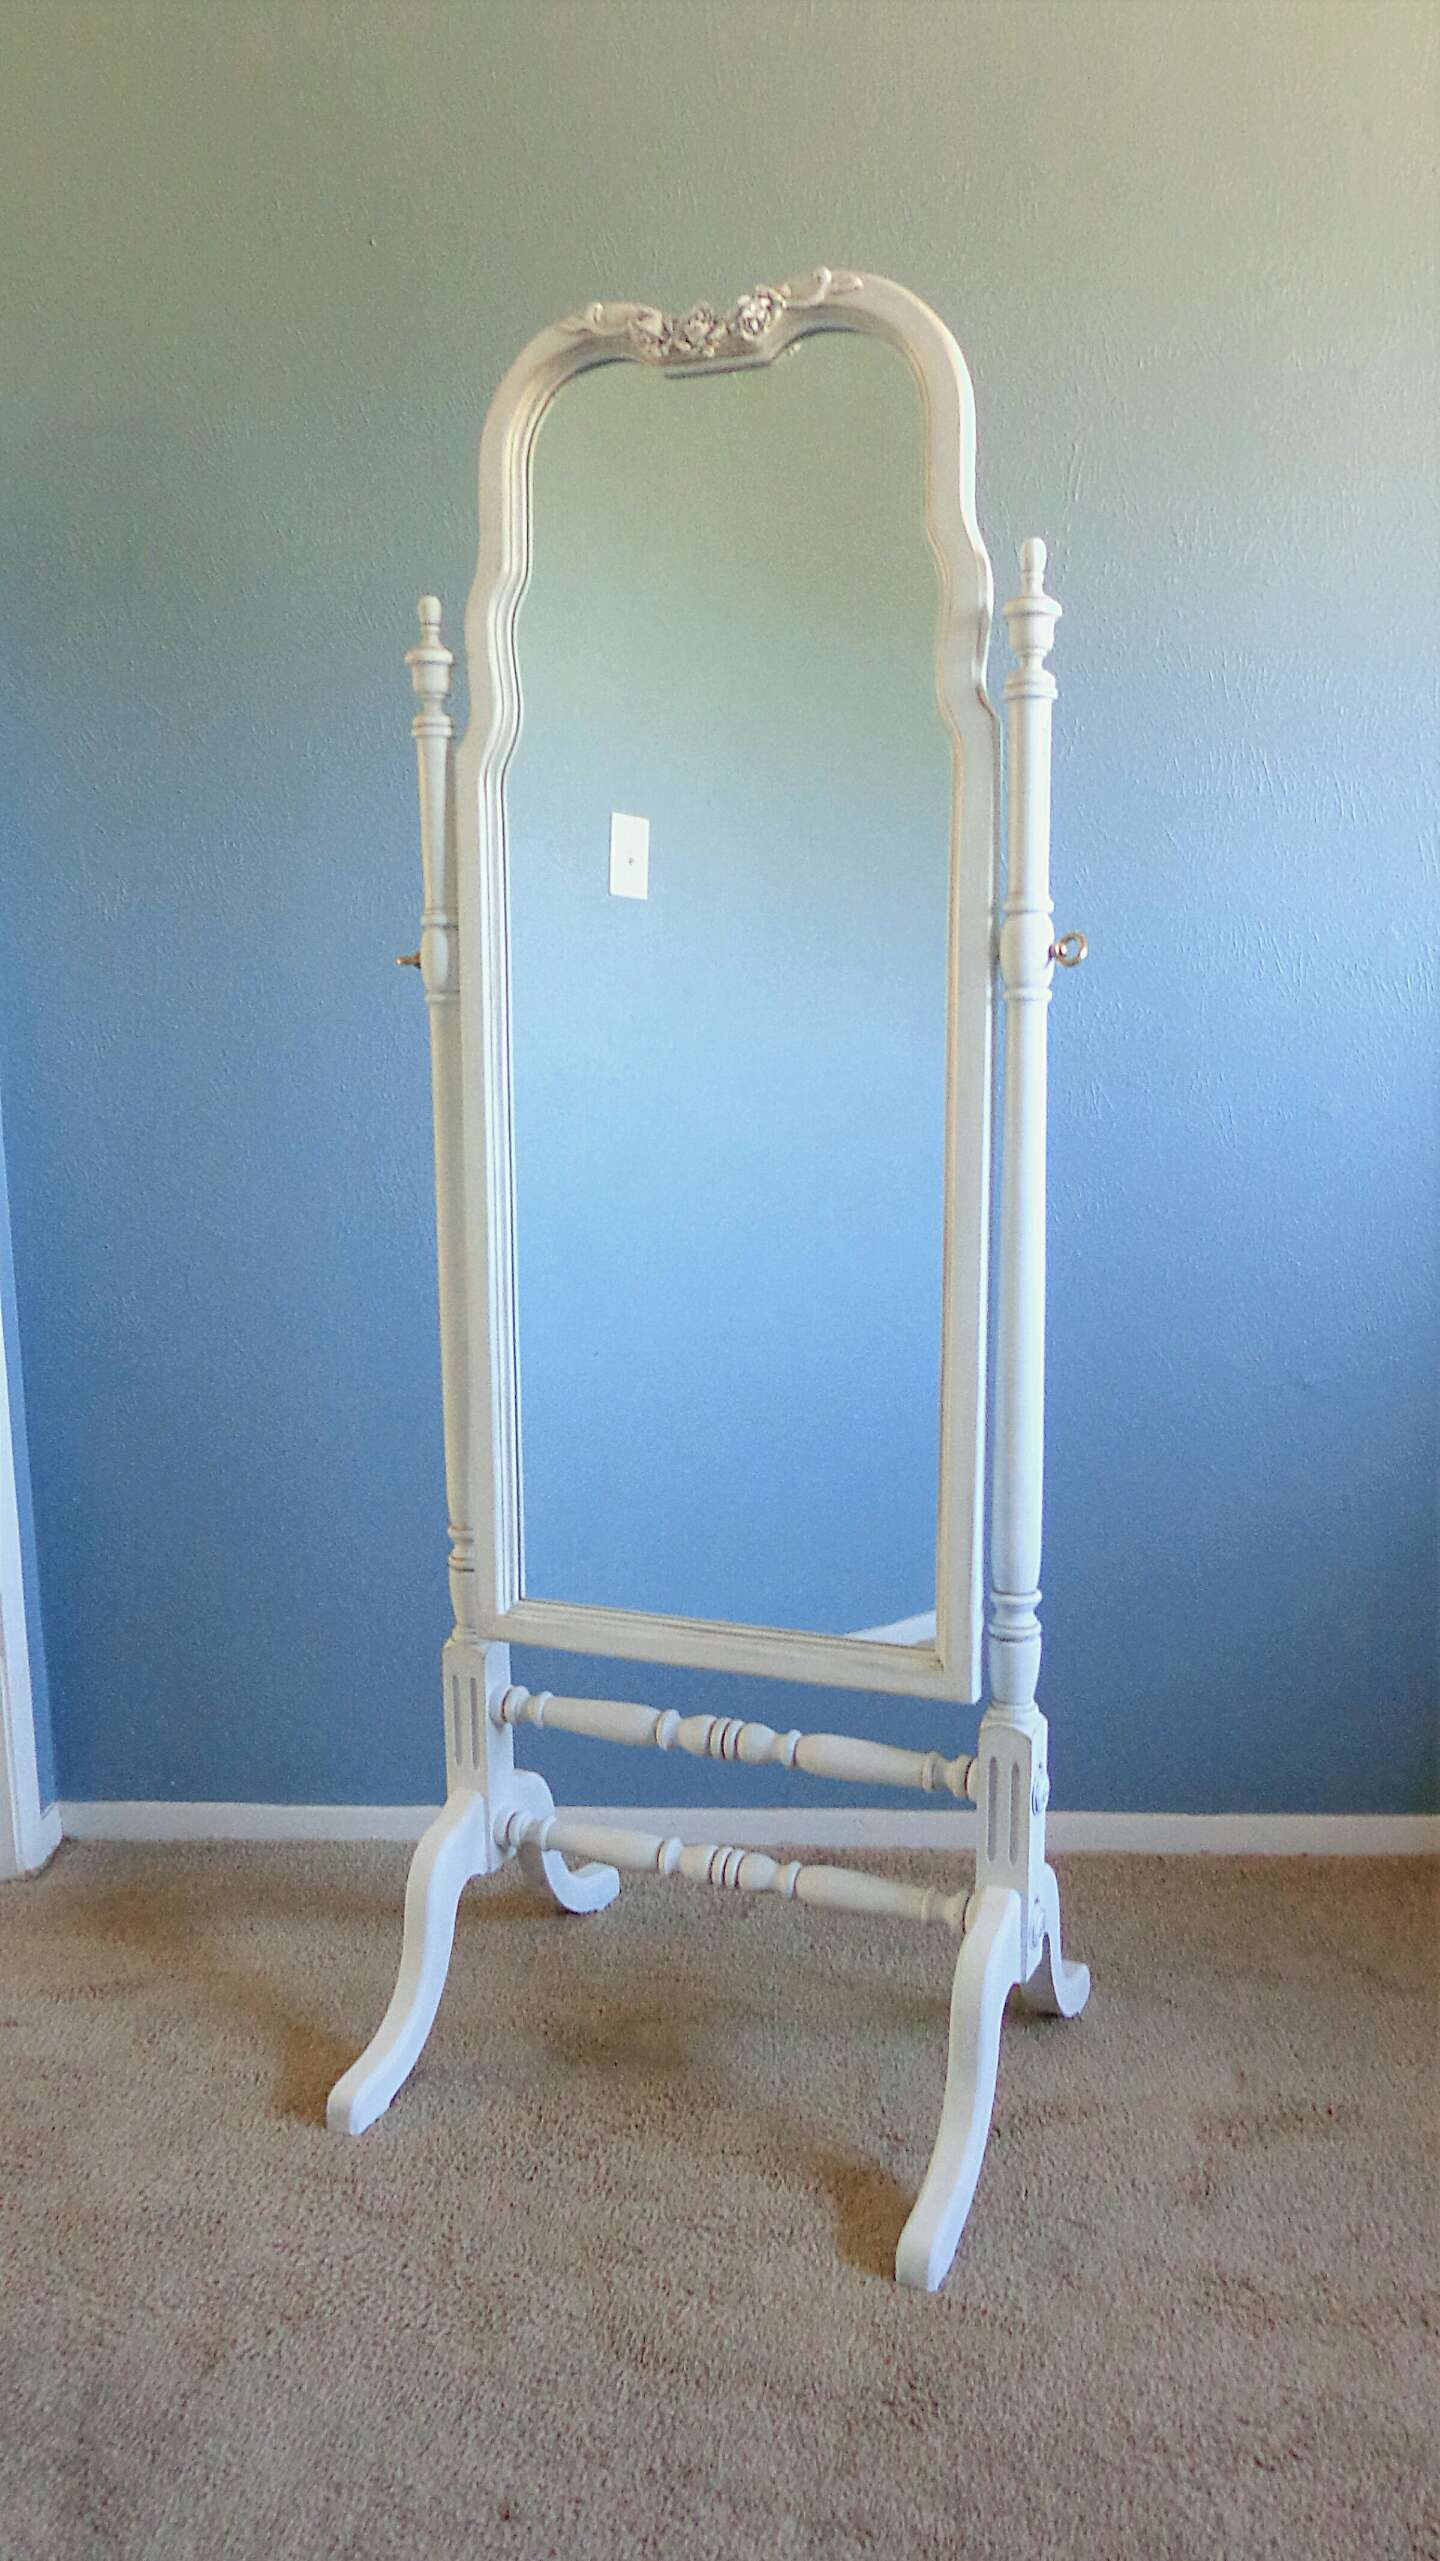 Ornate Full Length Cheval Mirror - French Provincial - Antiqued ...